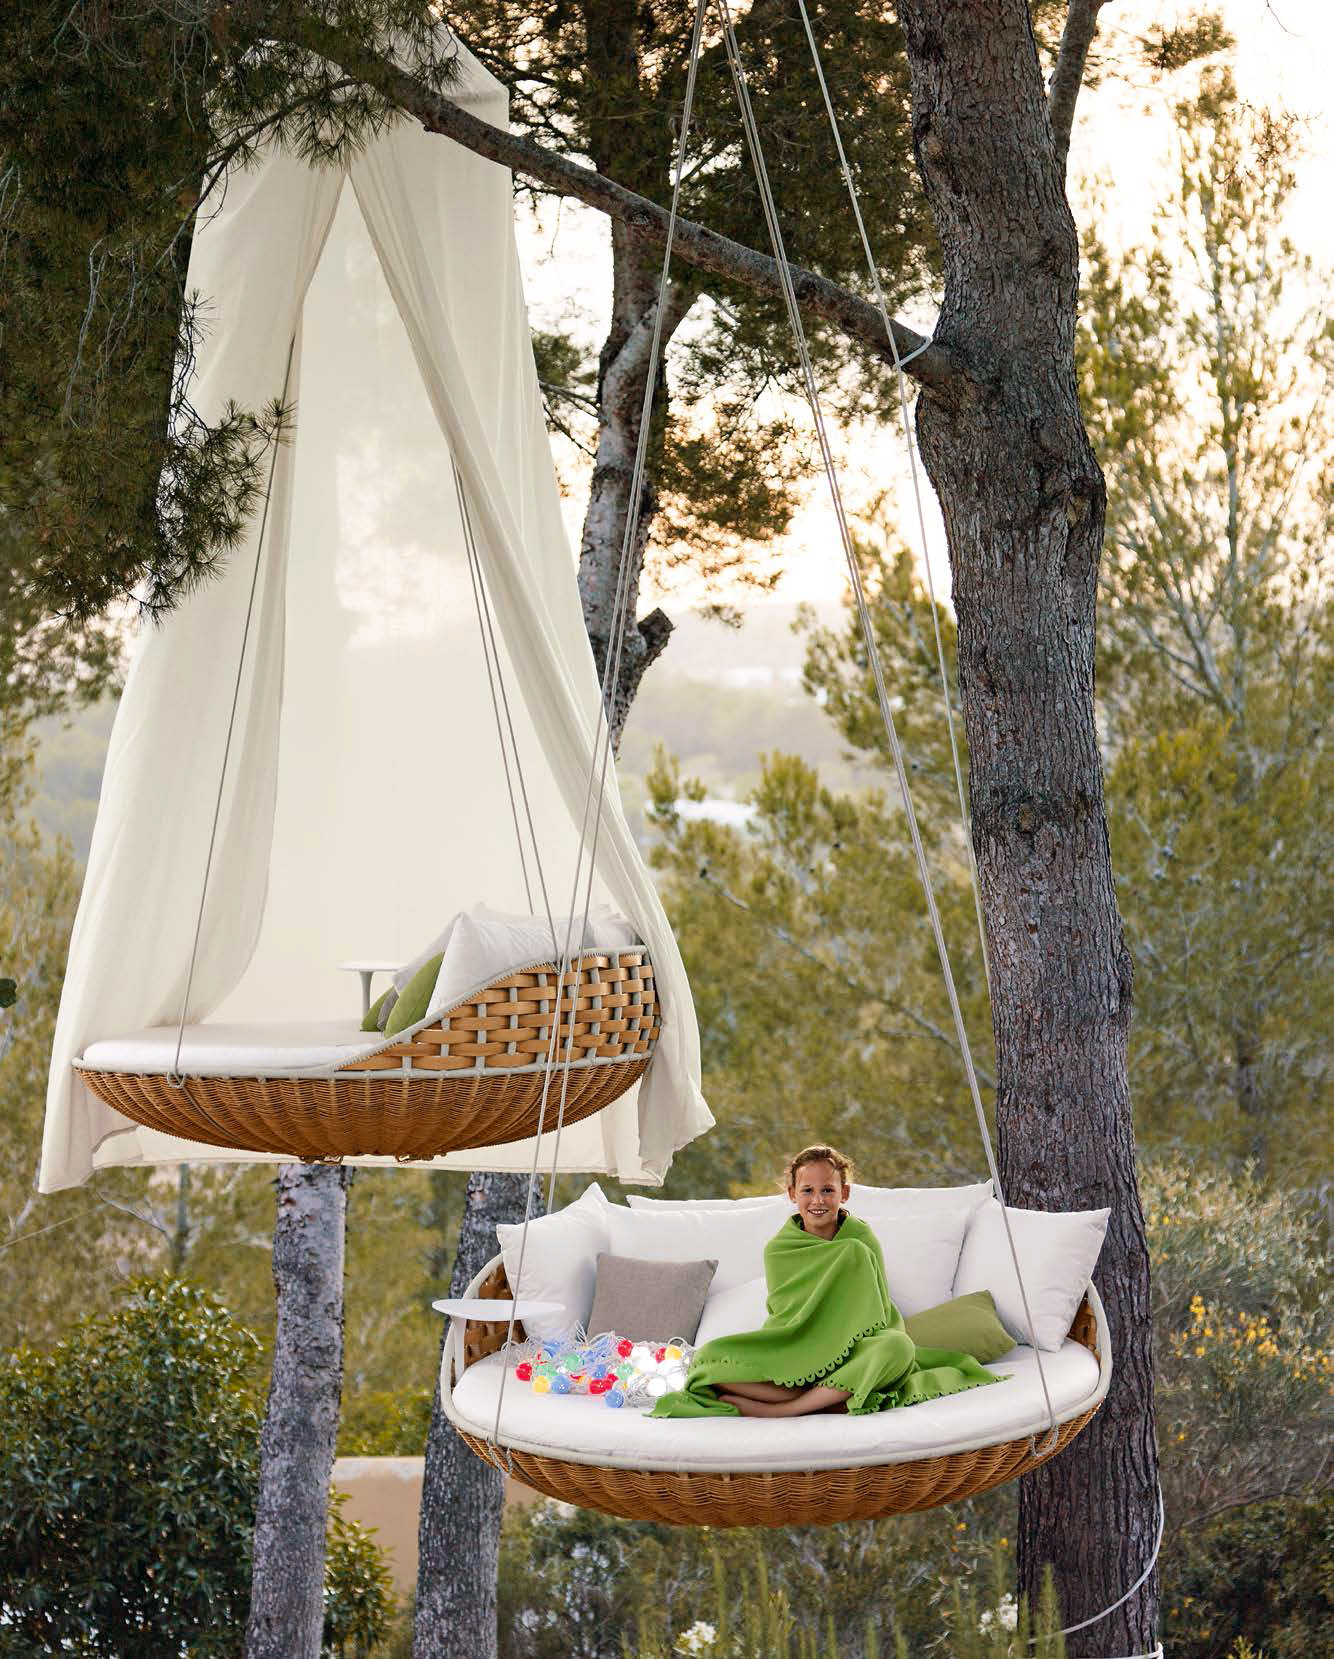 Lettino Swingrest, Daniel Pouzet, Dedon, 2013